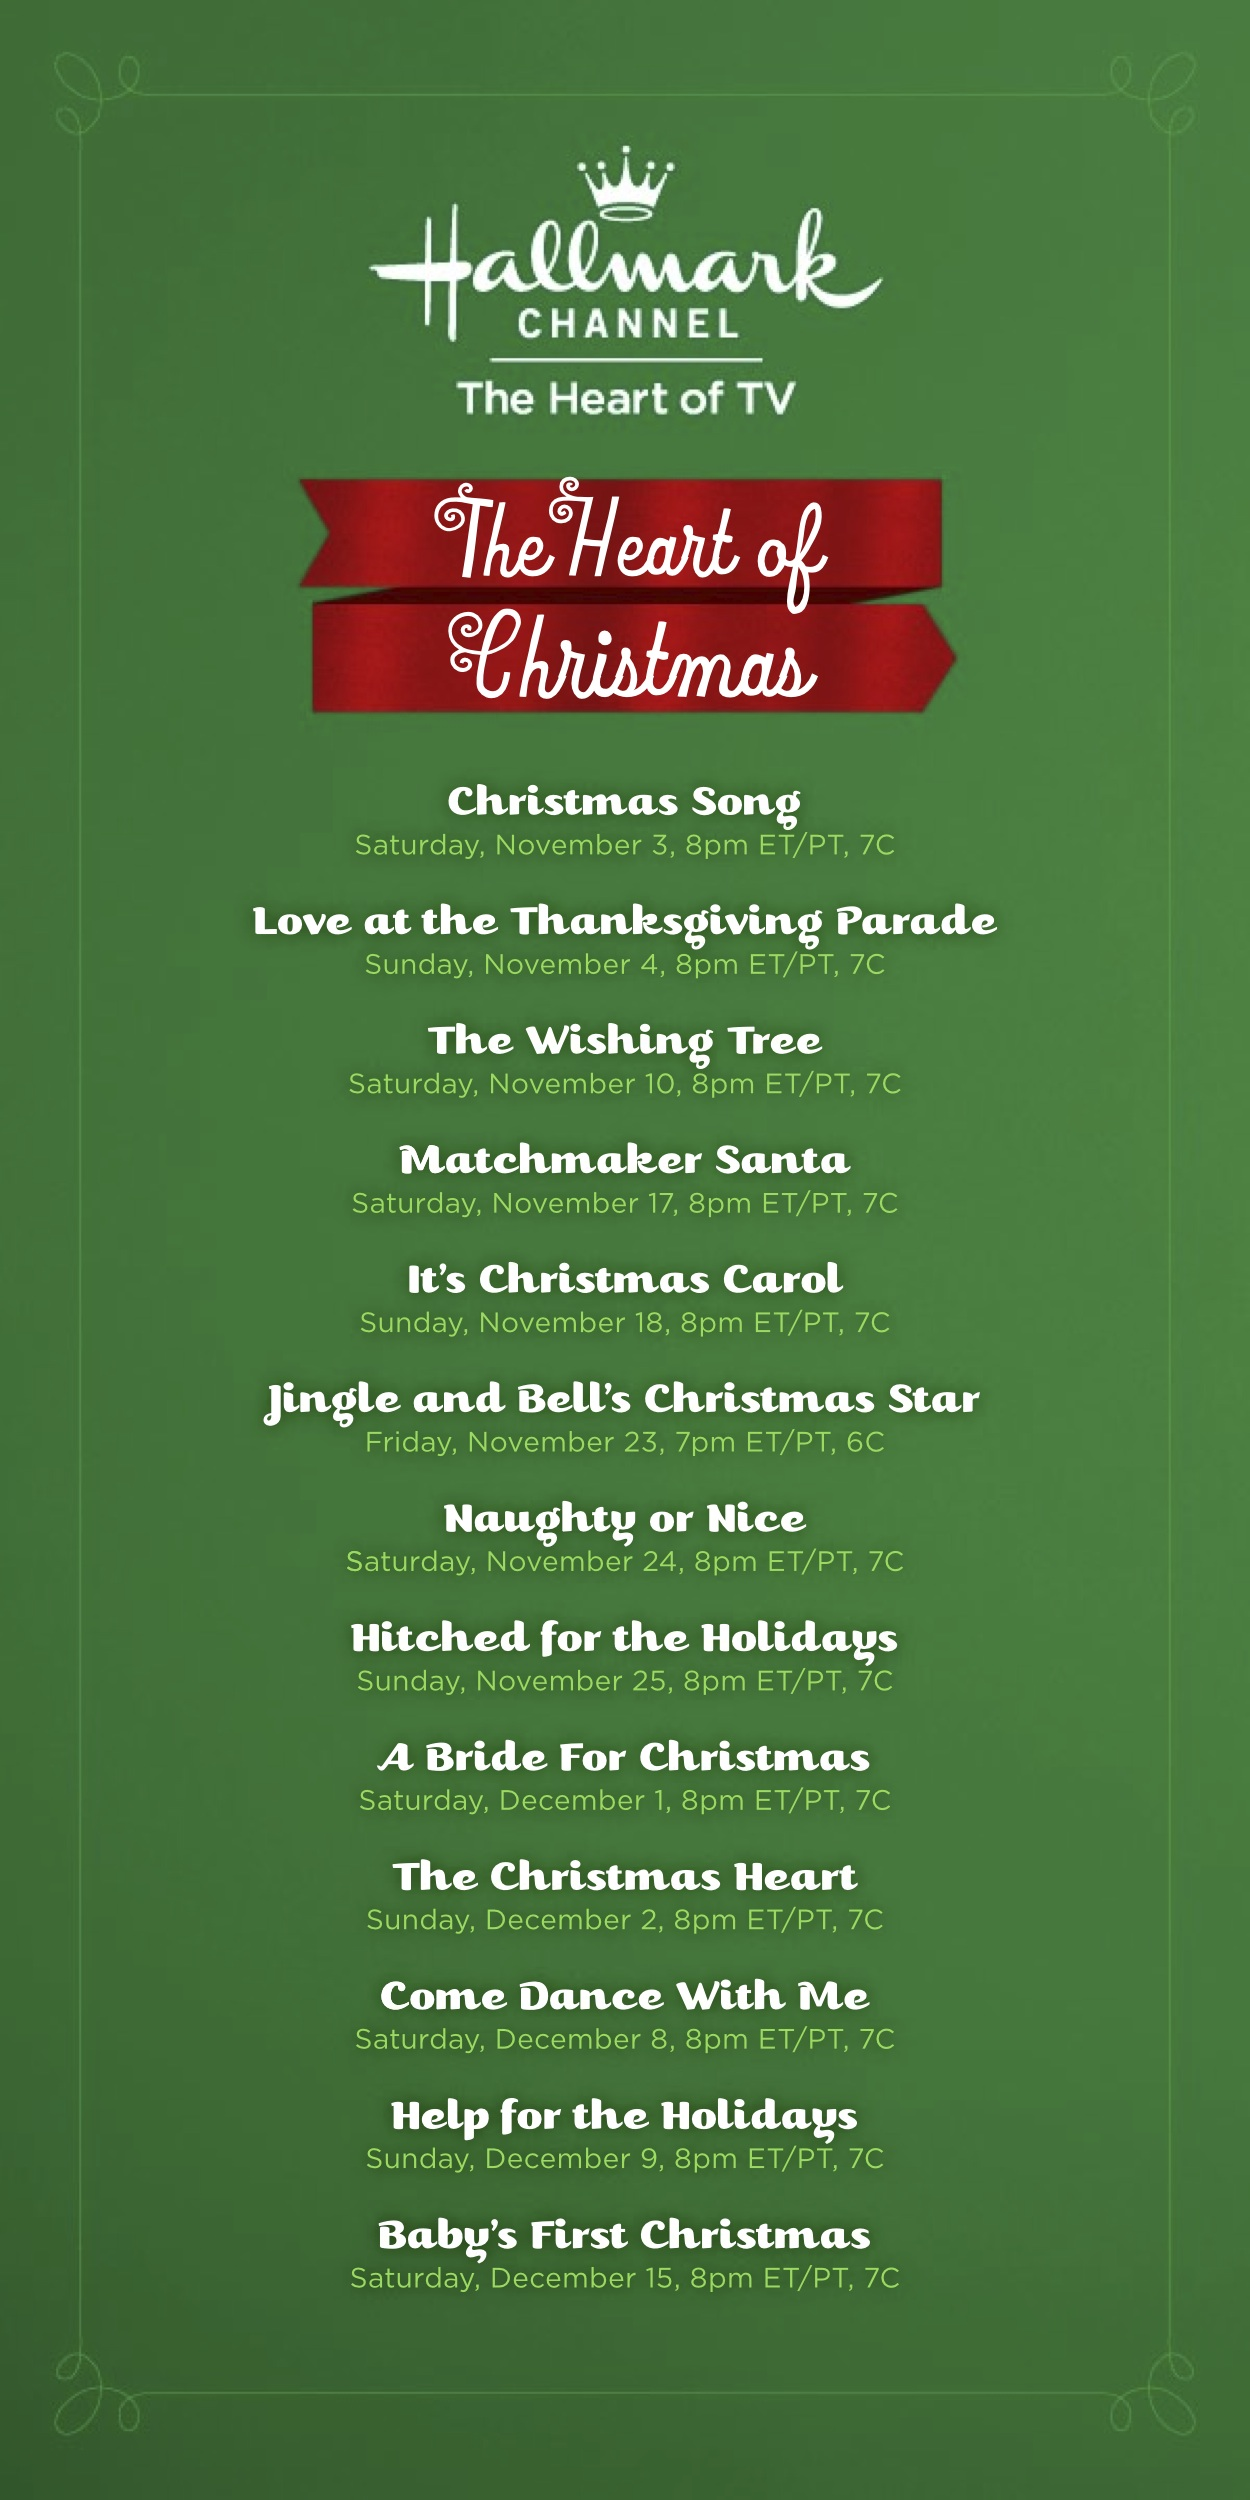 Grandco sandals february 2015 for Hallmark channel christmas movie schedule